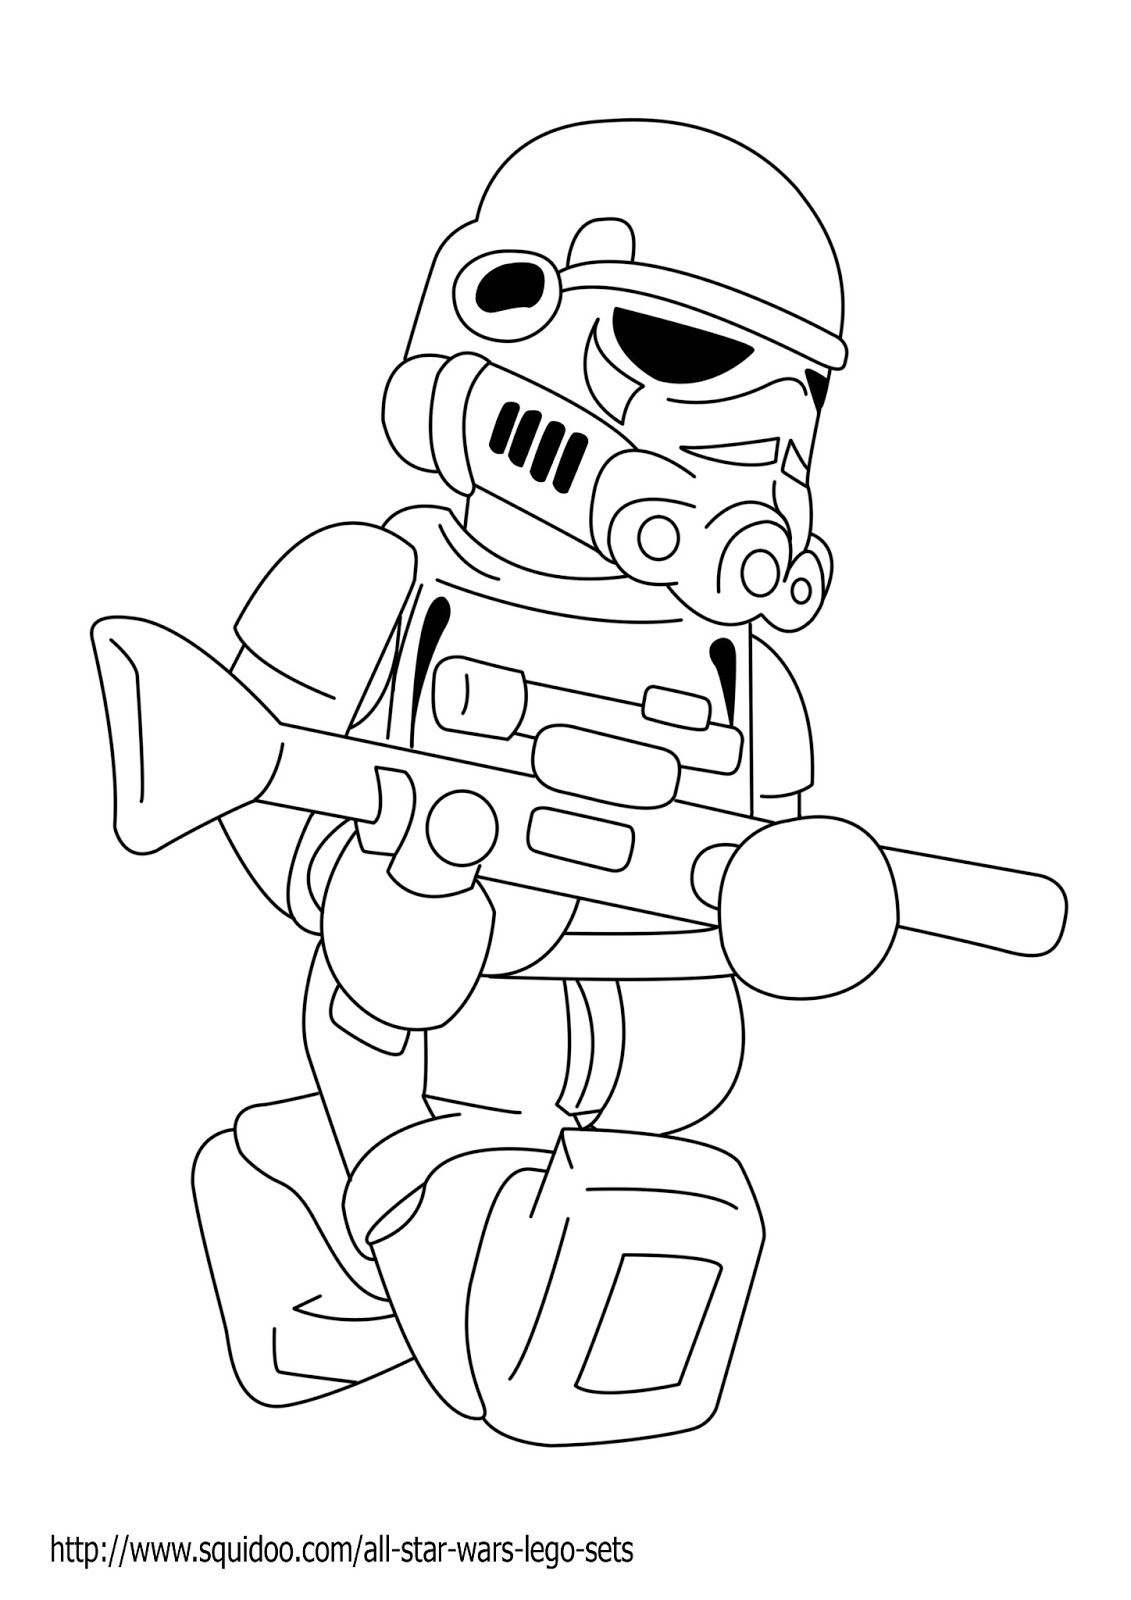 Coloring pages star wars bb8 - Lego Star Wars Coloring Pages Printable Star Wars Coloring Pages Free For Kids Picture